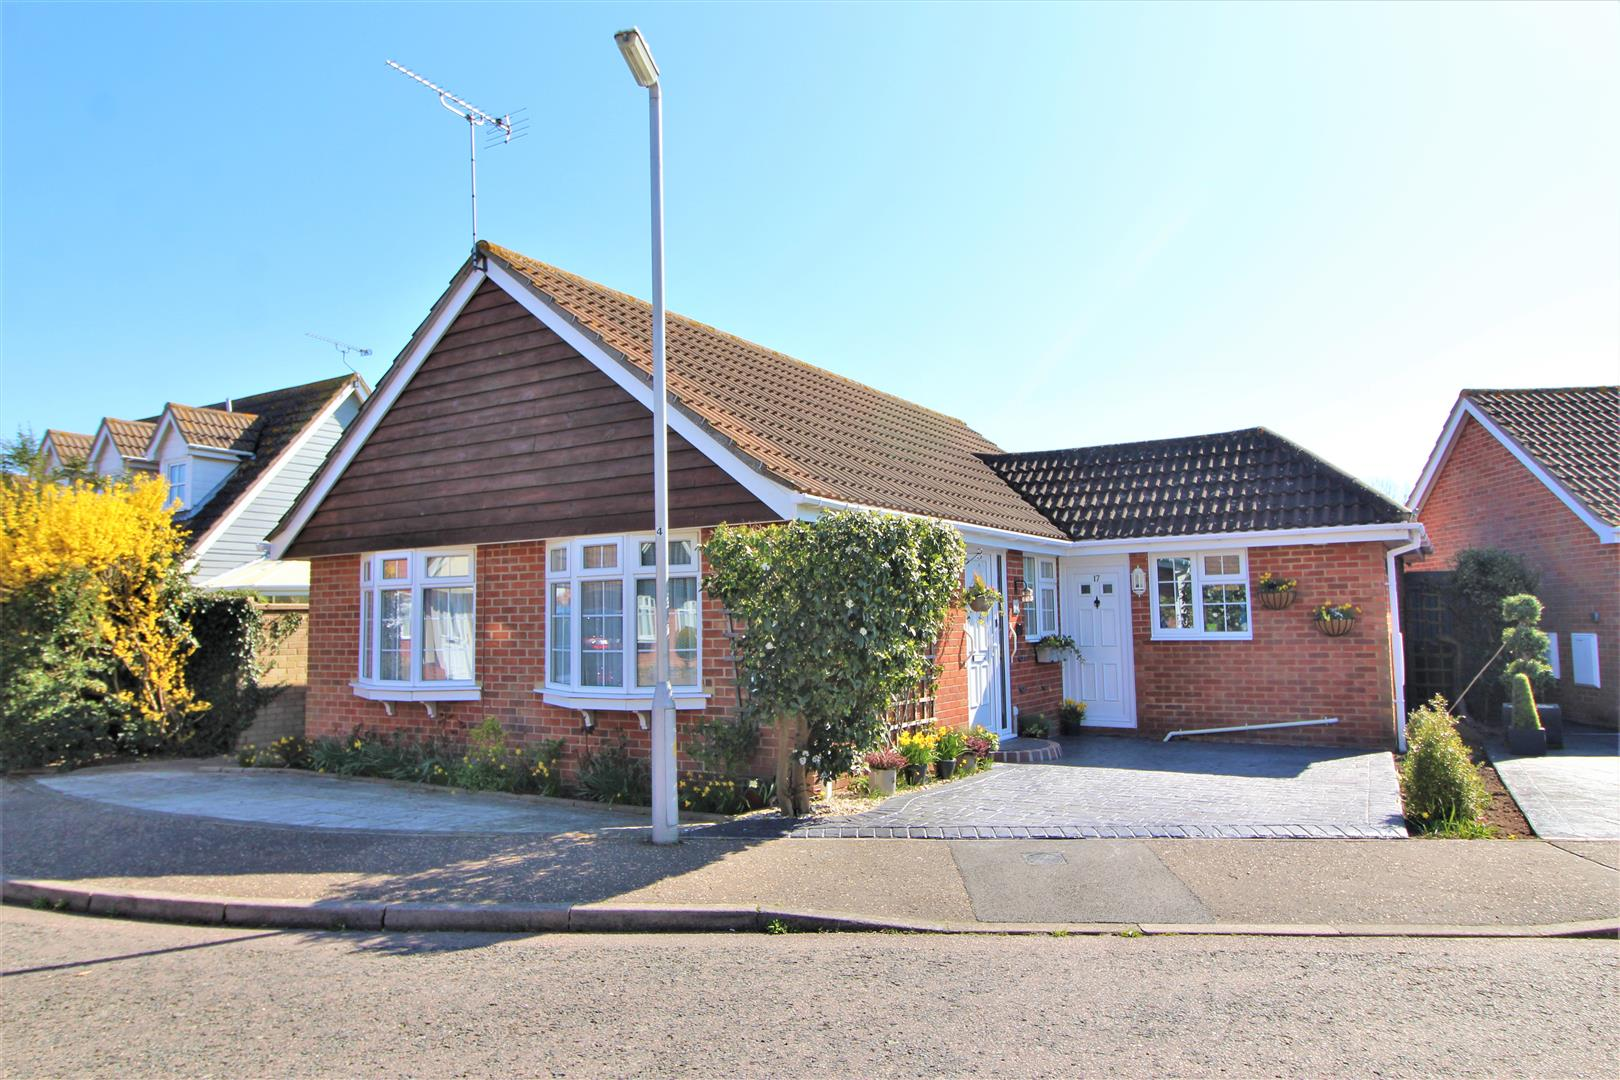 Wellfield Way, Kirby Cross, Essex, CO13 0PH